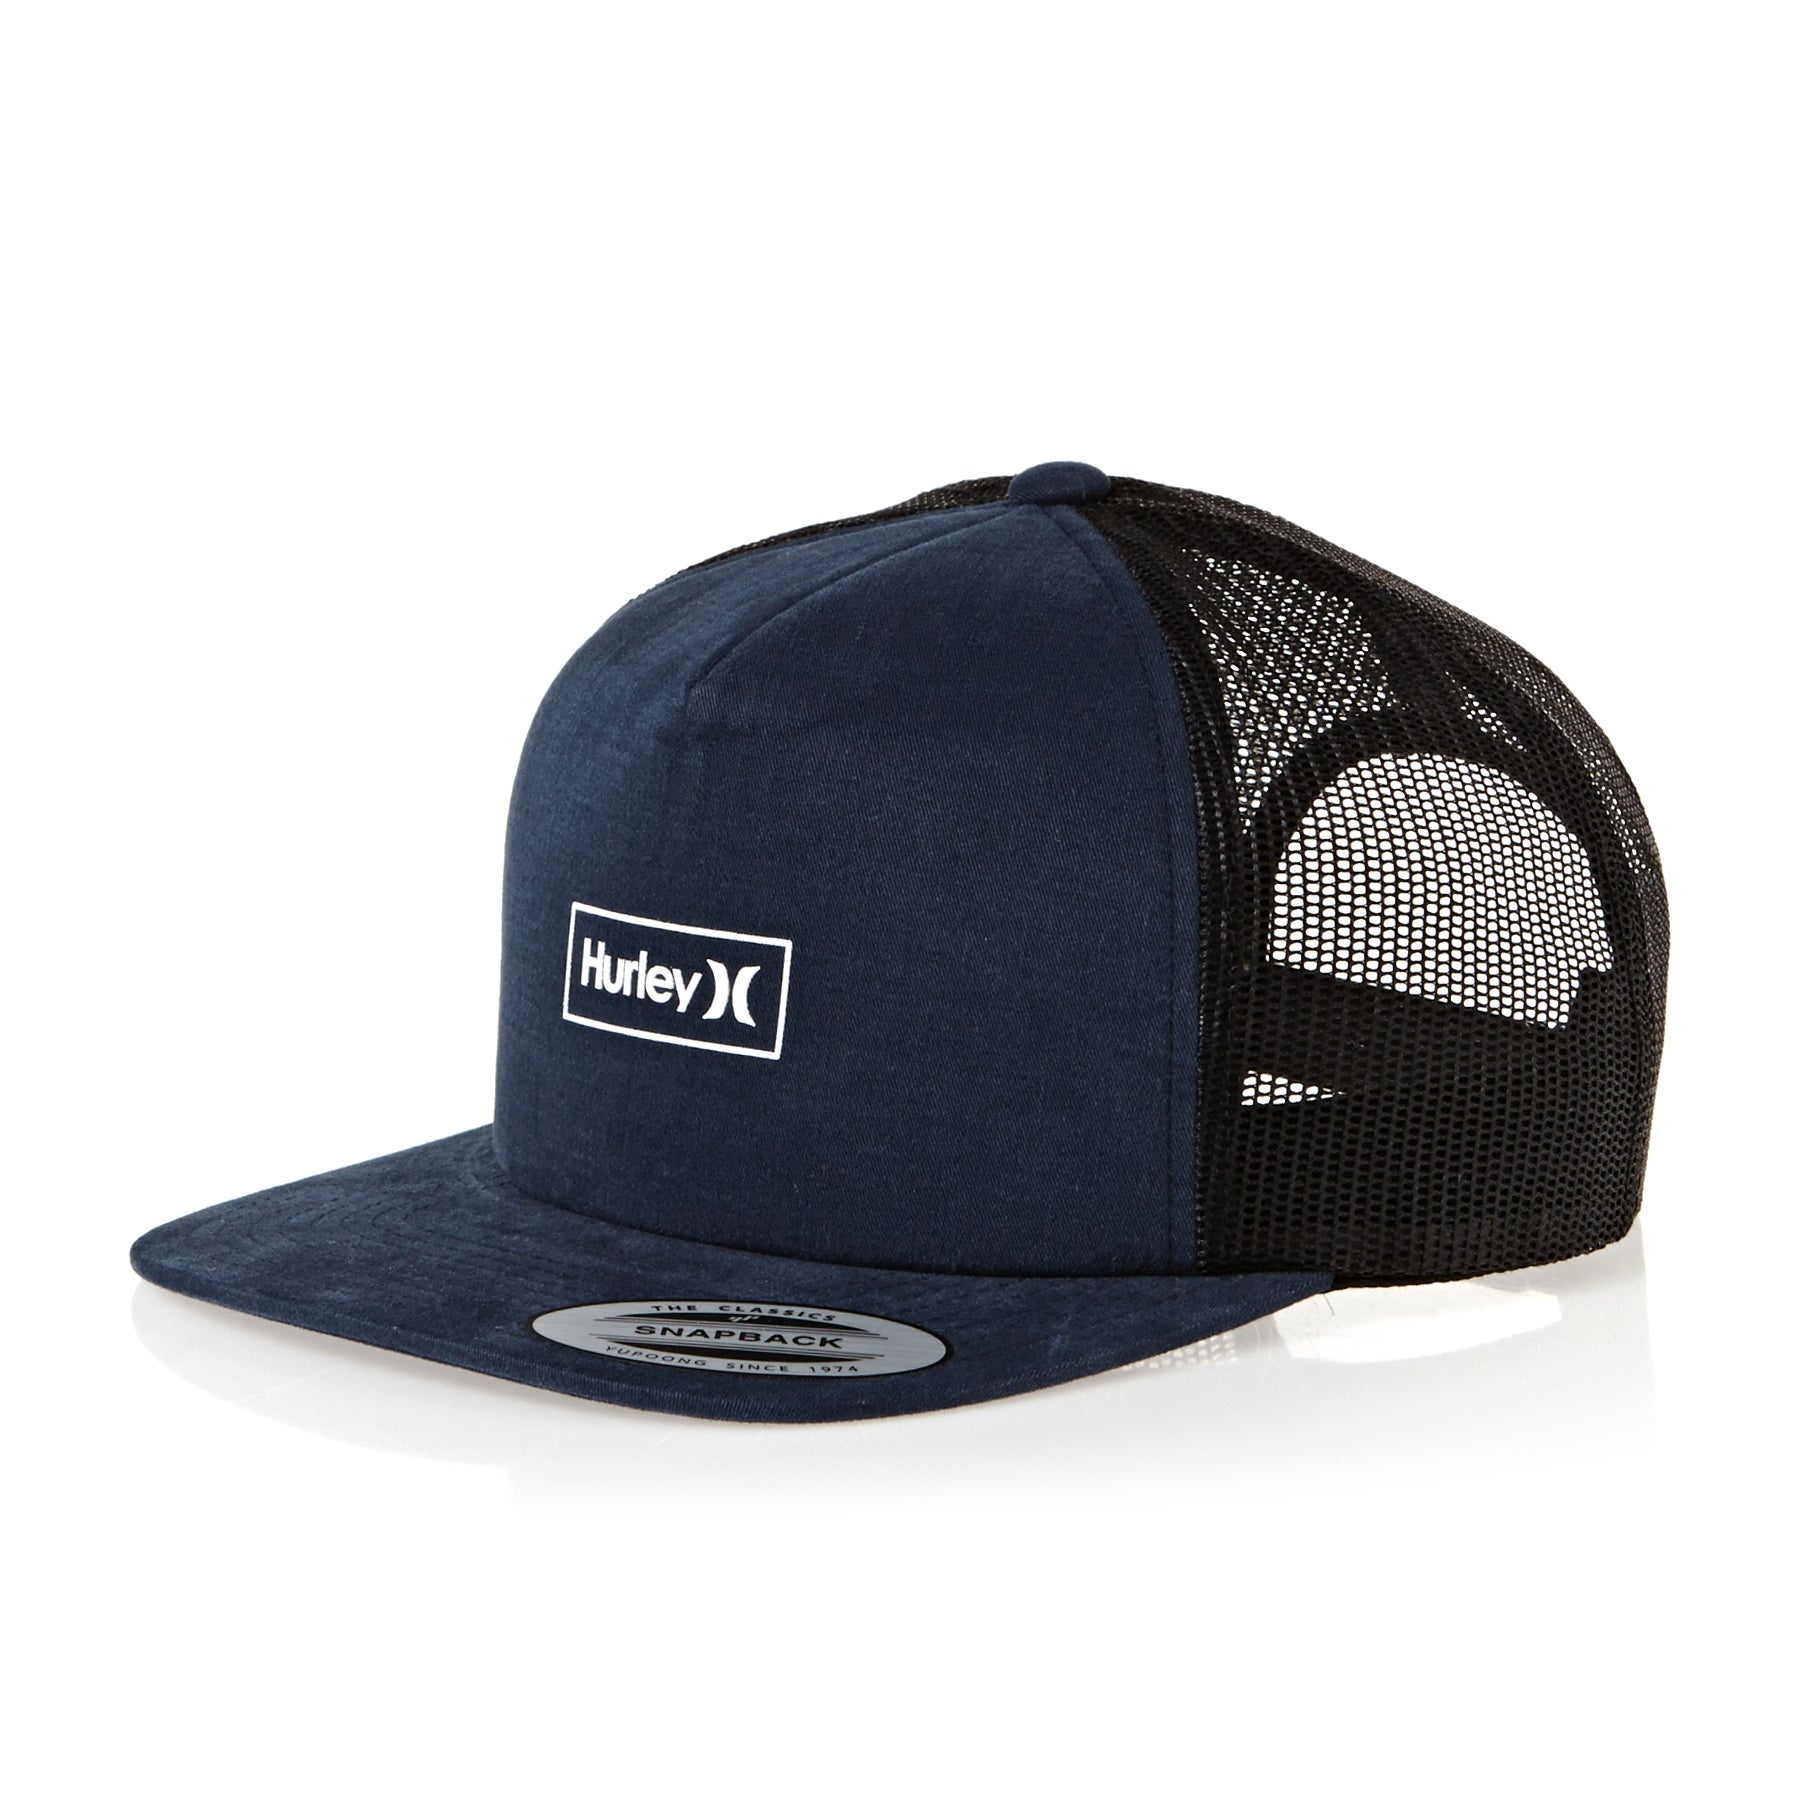 Hurley Locked Cap - Blue Force